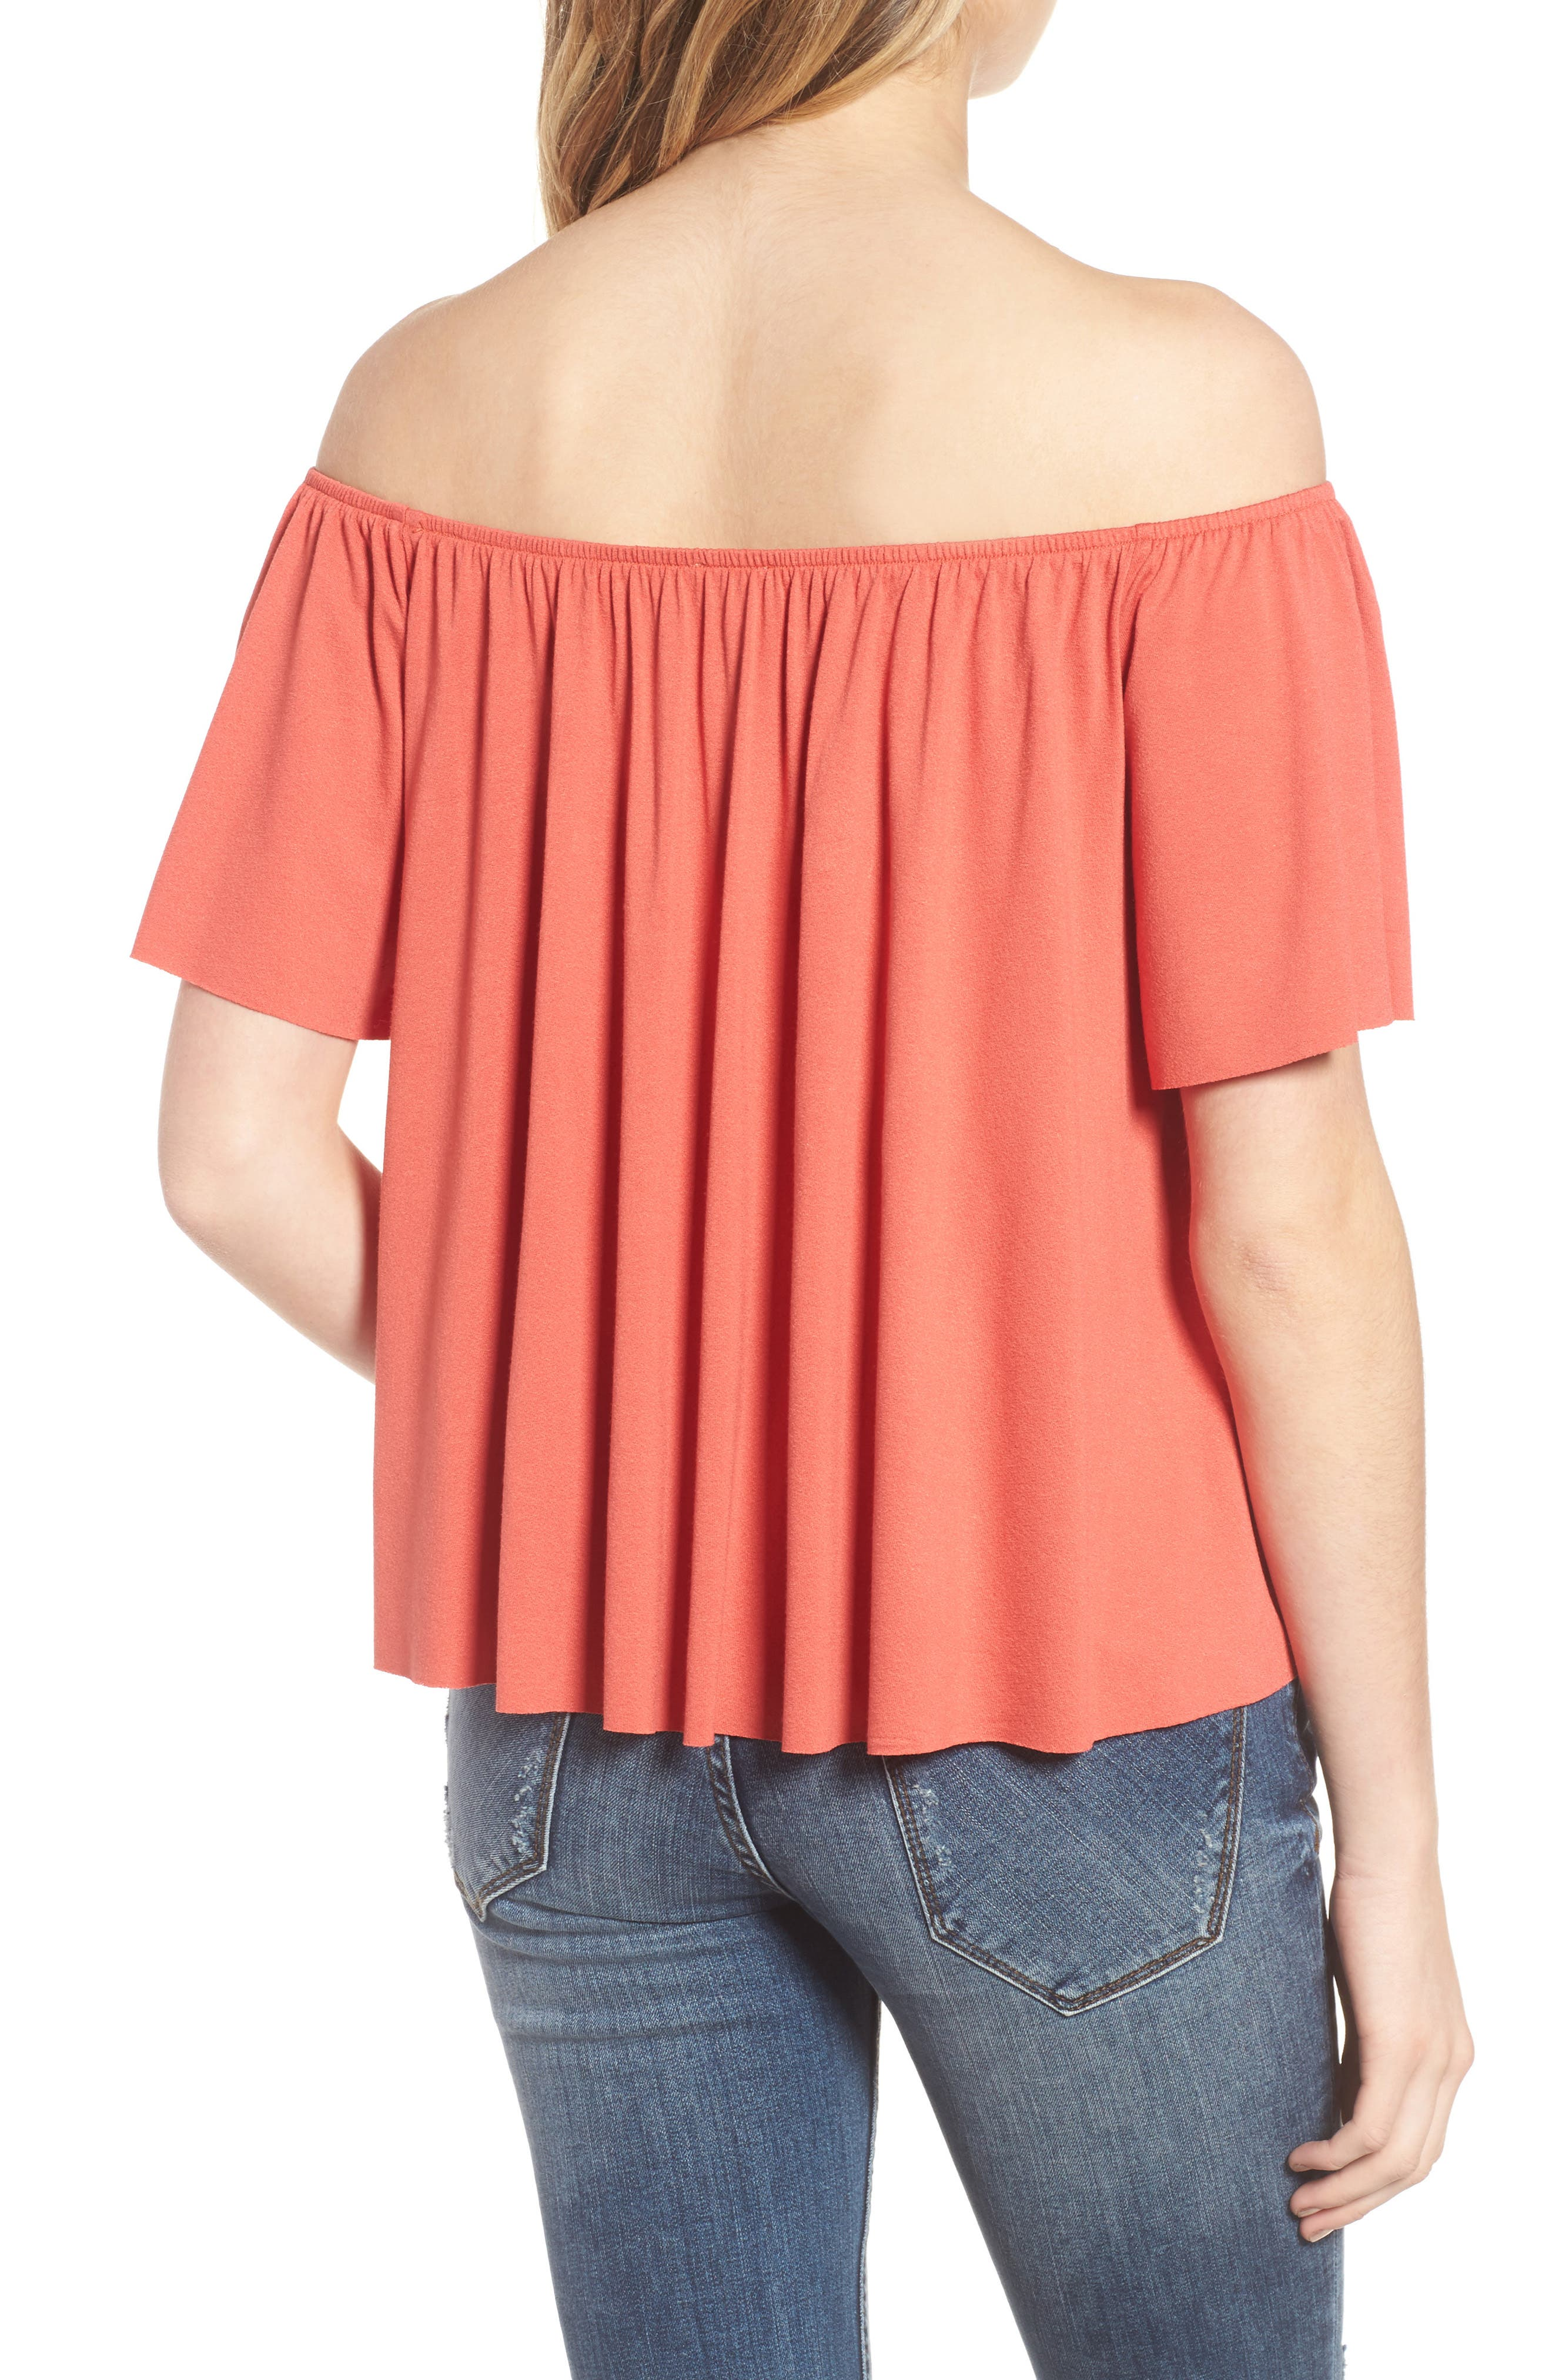 Off the Shoulder Top,                             Alternate thumbnail 2, color,                             Rust Sienna